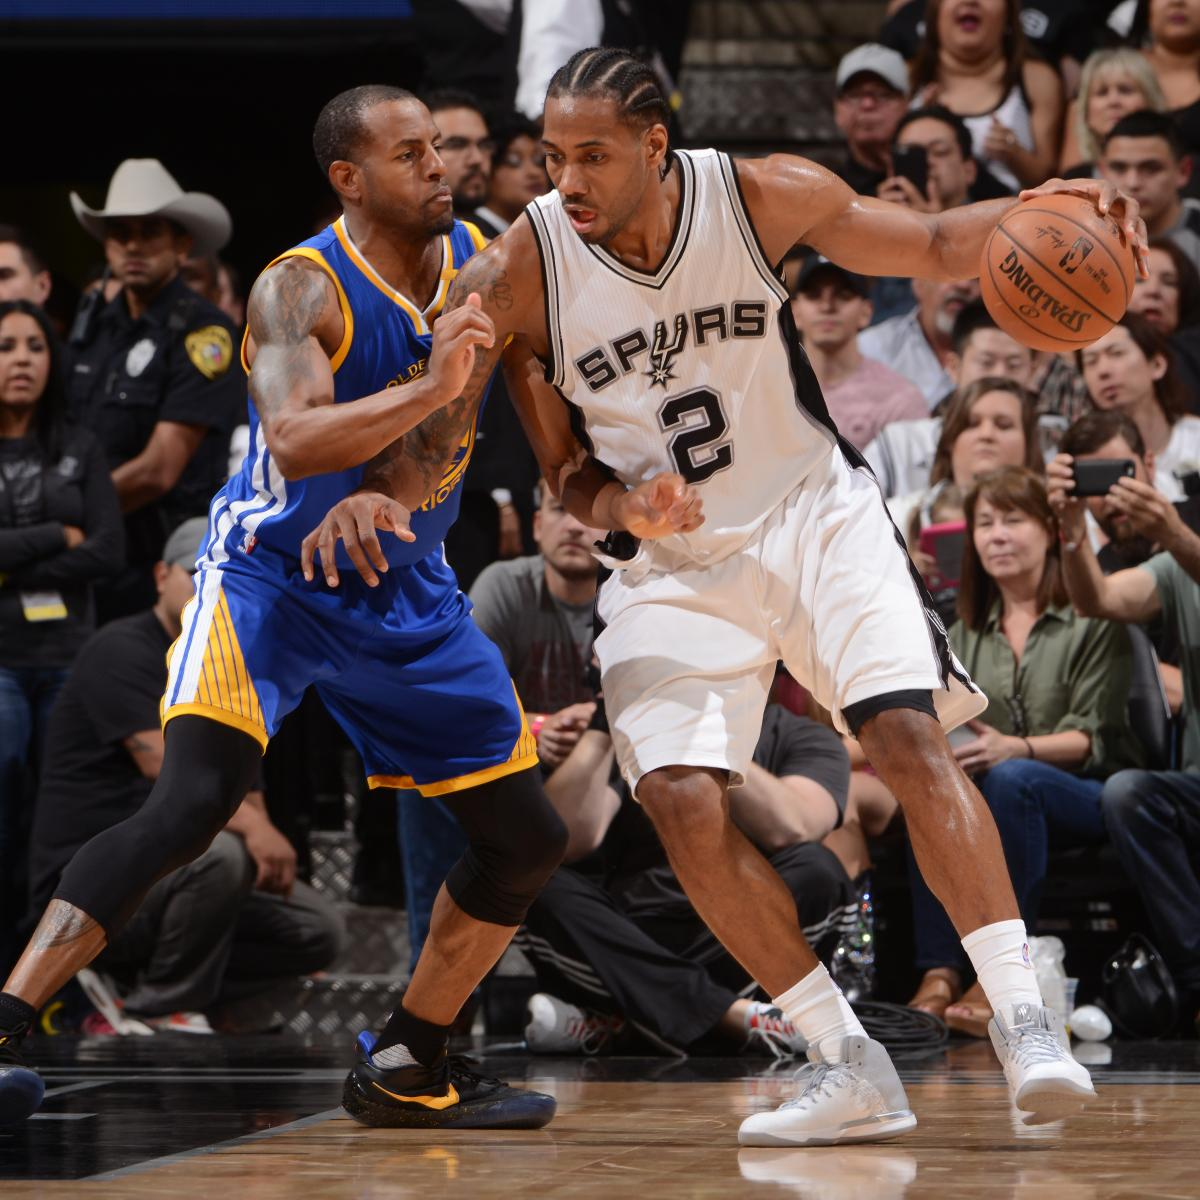 Rockets Vs Warriors Feb 23 2019: Ultimate Guide To San Antonio Spurs Upsetting The Golden